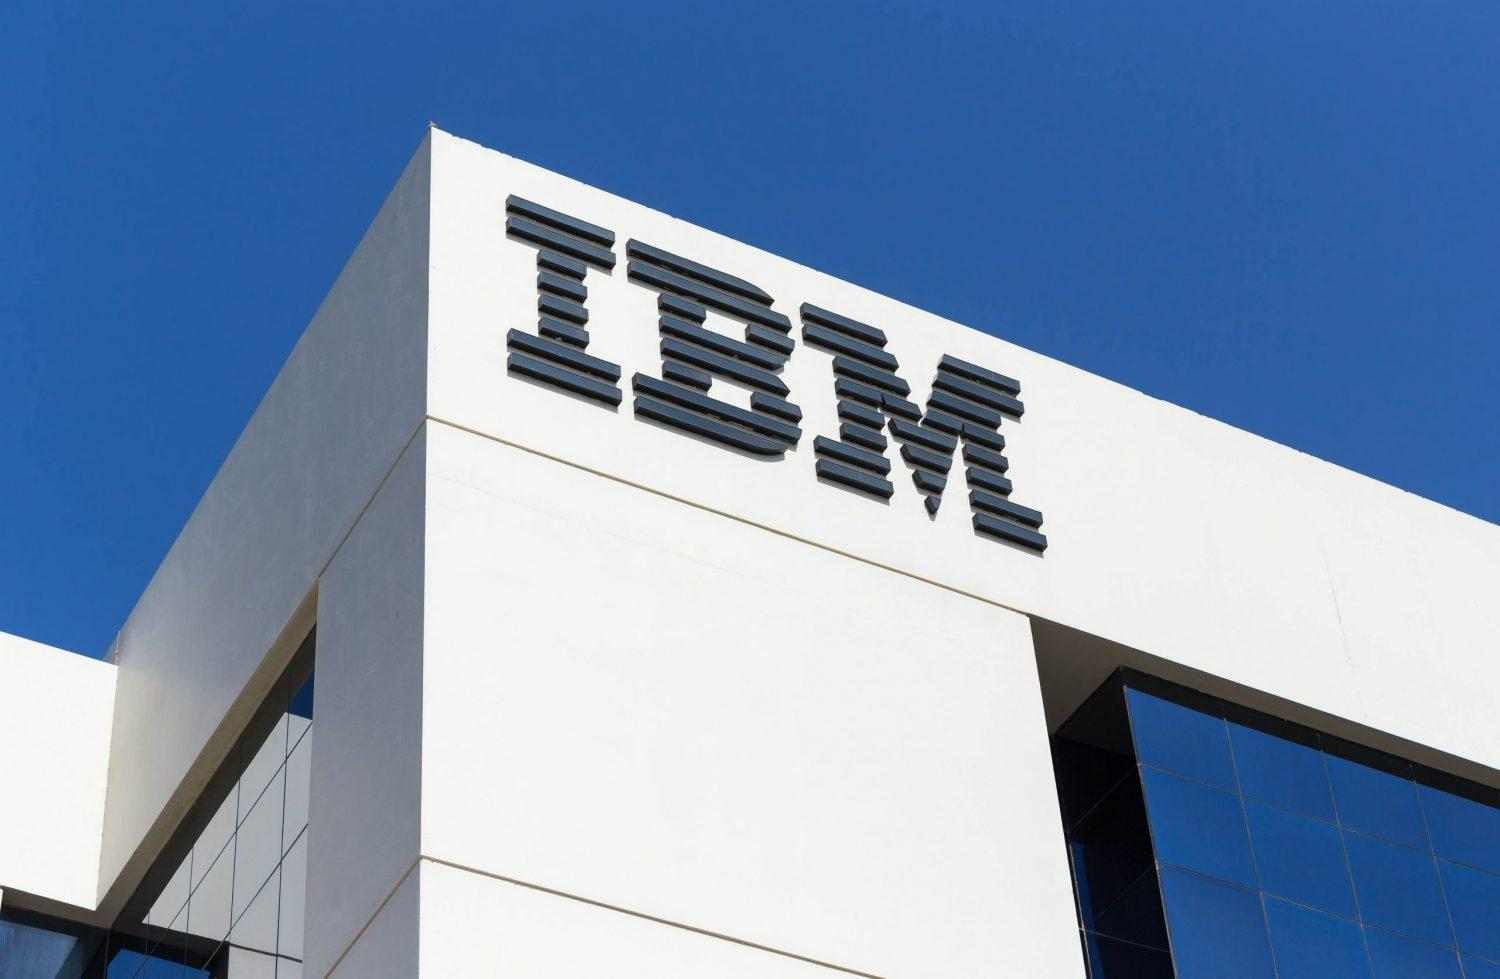 IBM Blockchain VP: Every Dollar Spent on Blockchain Yields $15 on Cloud